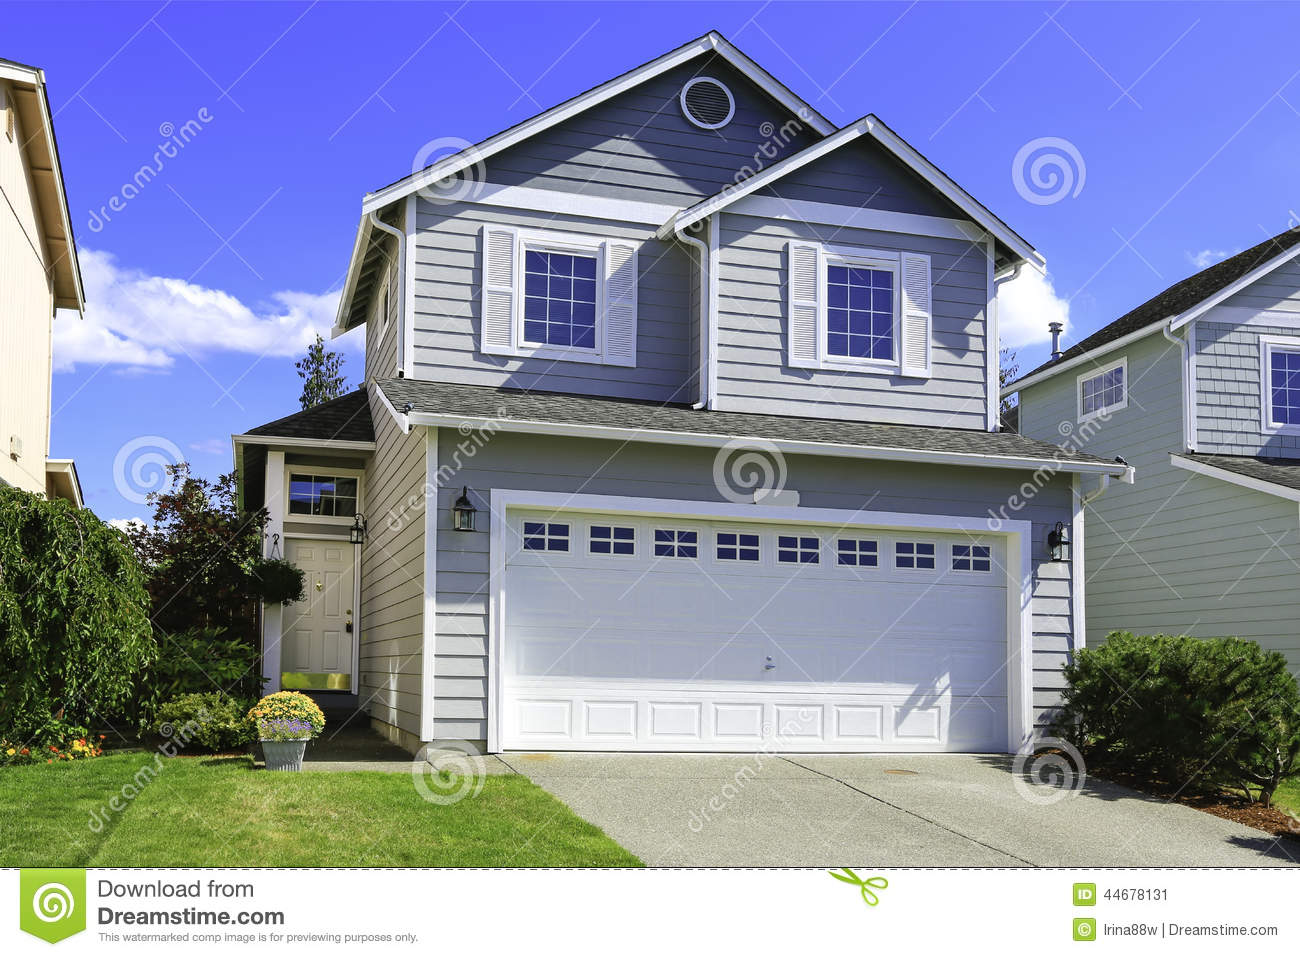 Cozy house exterior with garage stock photo image 44678131 for Exterior 2 story homes